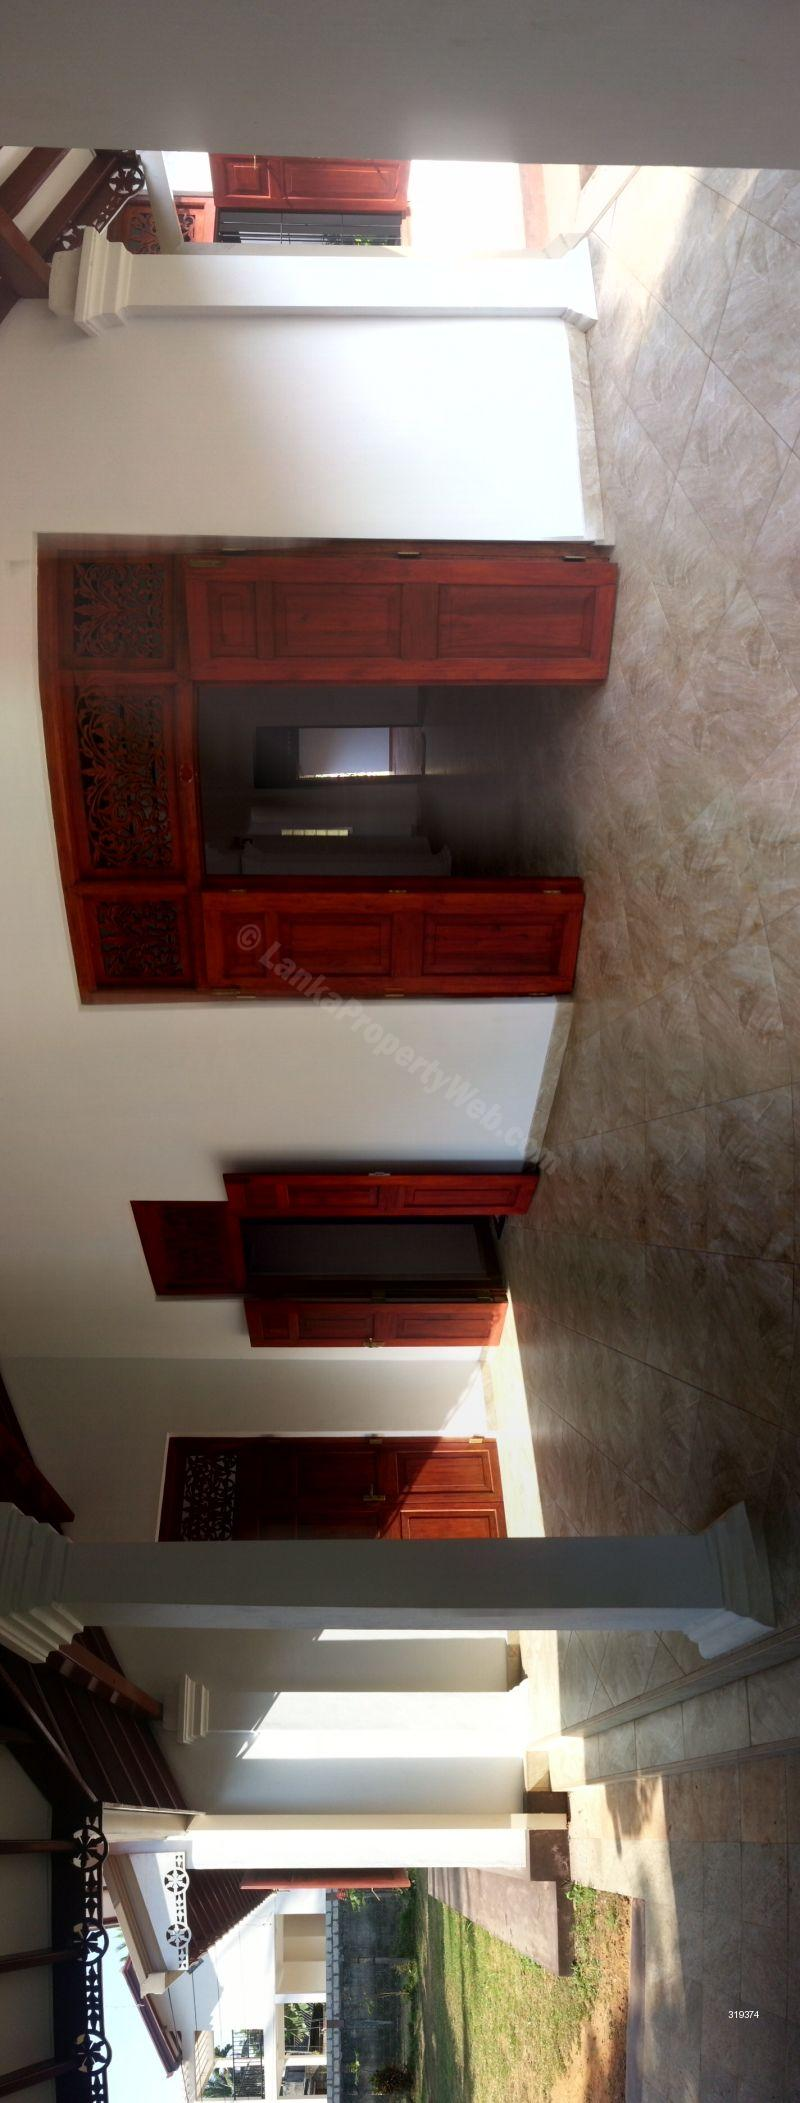 House for rent in Kalutara - House for rent (Renovated Antique Luxury House)